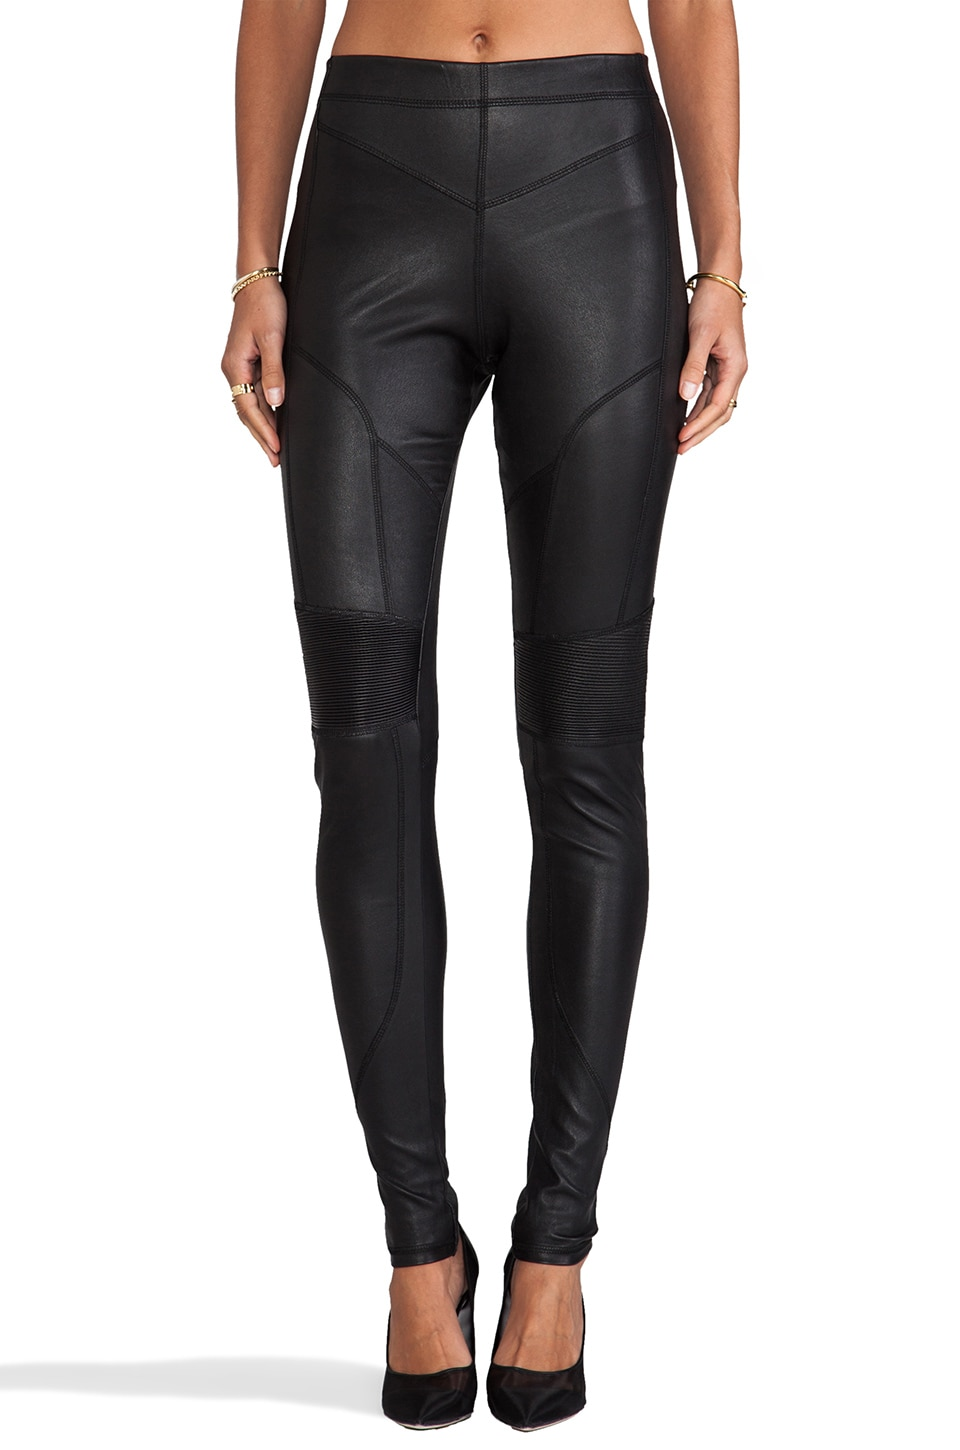 Francis Leon Hero Squad Legging in Black